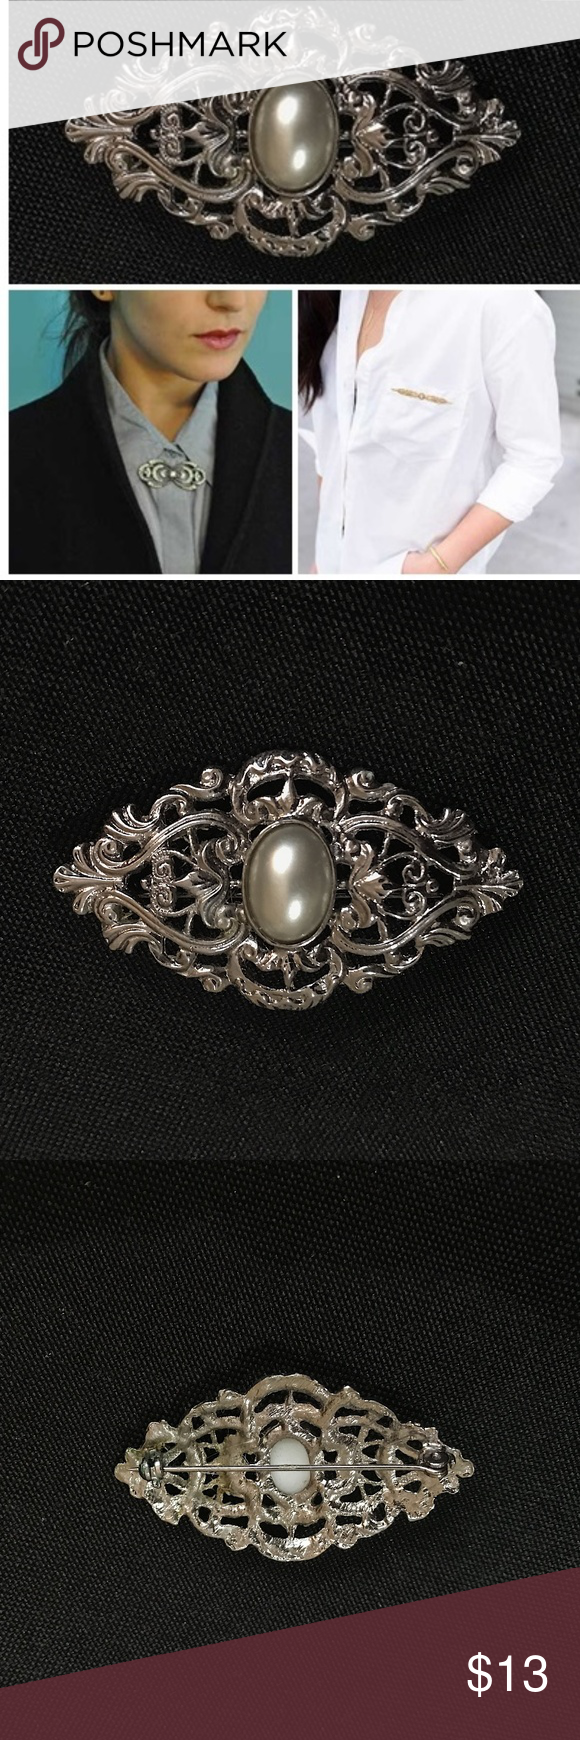 VTG 80s Silver Pearlescent Bar Brooch Vintage 1980s Silver philagree Victorian revival design with pearlescent jewel in the middle Silver back Good condition, with small discoloration on the back  Height (approx.): 1.25